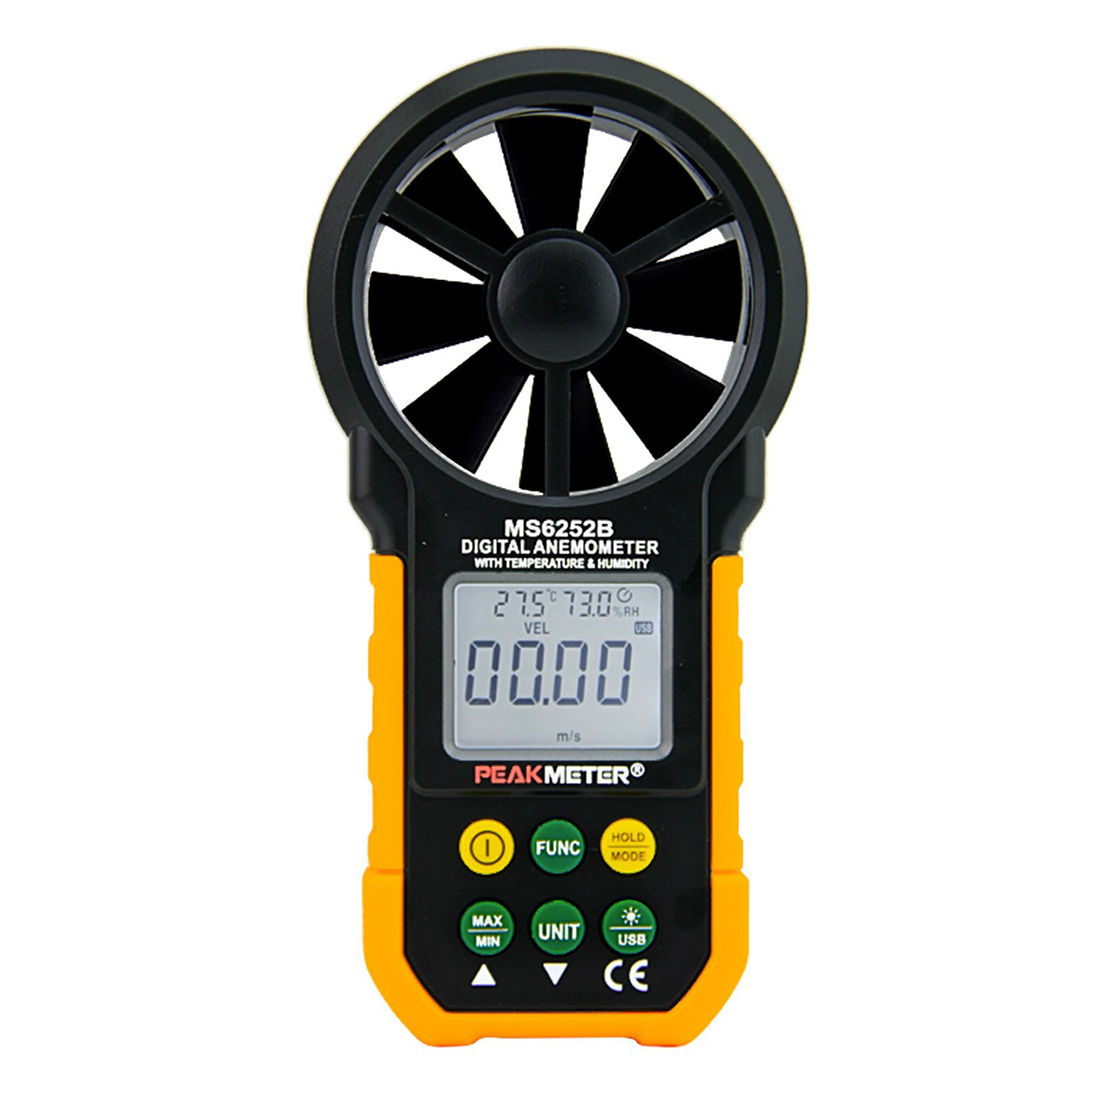 New PEAKMETER MS6252B USB Digital Anemometer Air Flow Tester Meter lm 81am anemometer meter lutron new lm81am